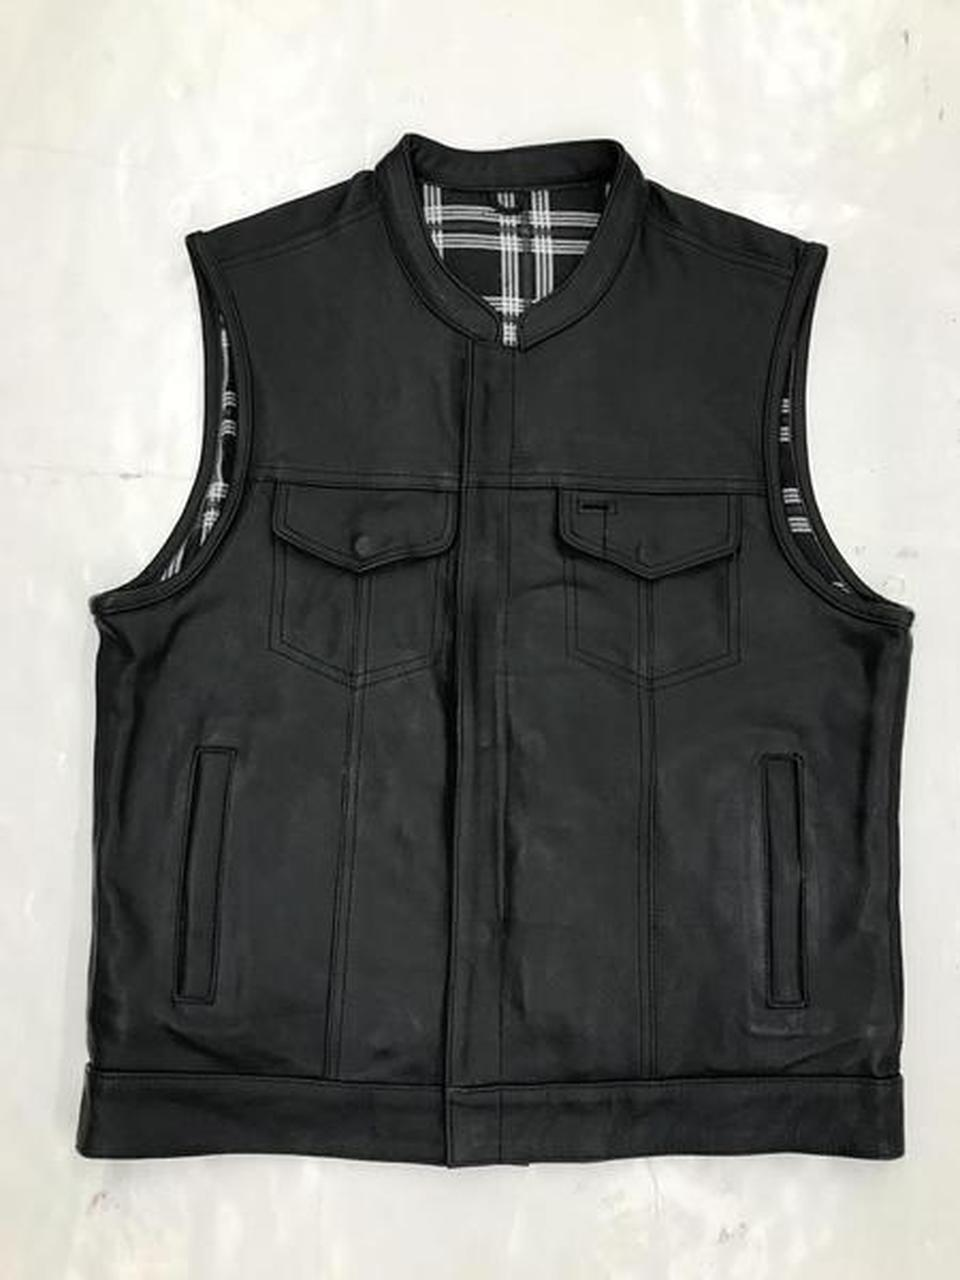 Men's Unik Leather Vest with Black & White Flannel Lining 6664.00